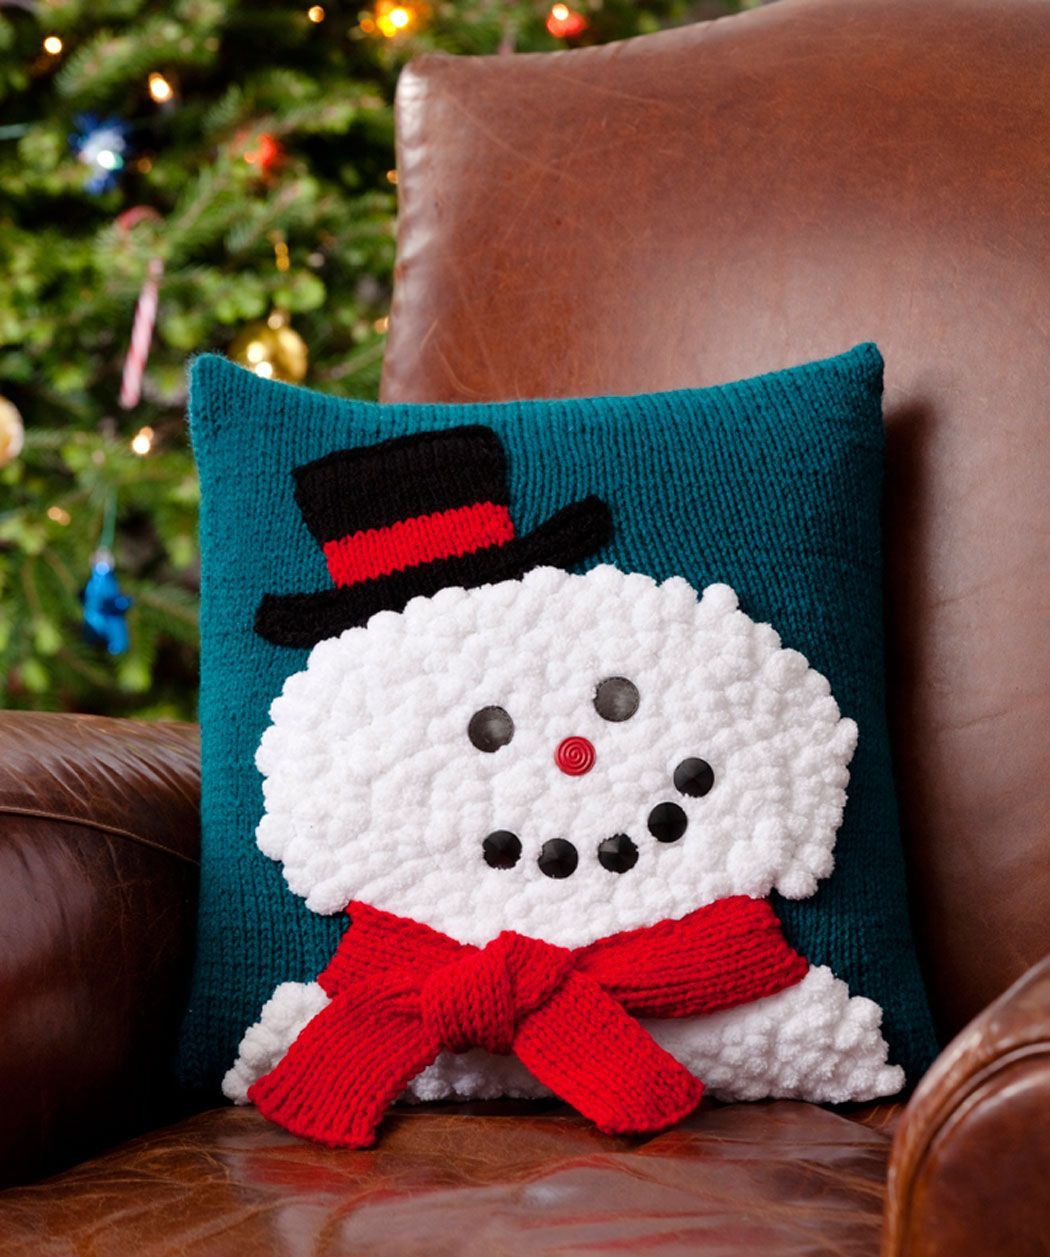 Knitting Pillows For Beginners : Knitting pillow patterns for beginners snowman